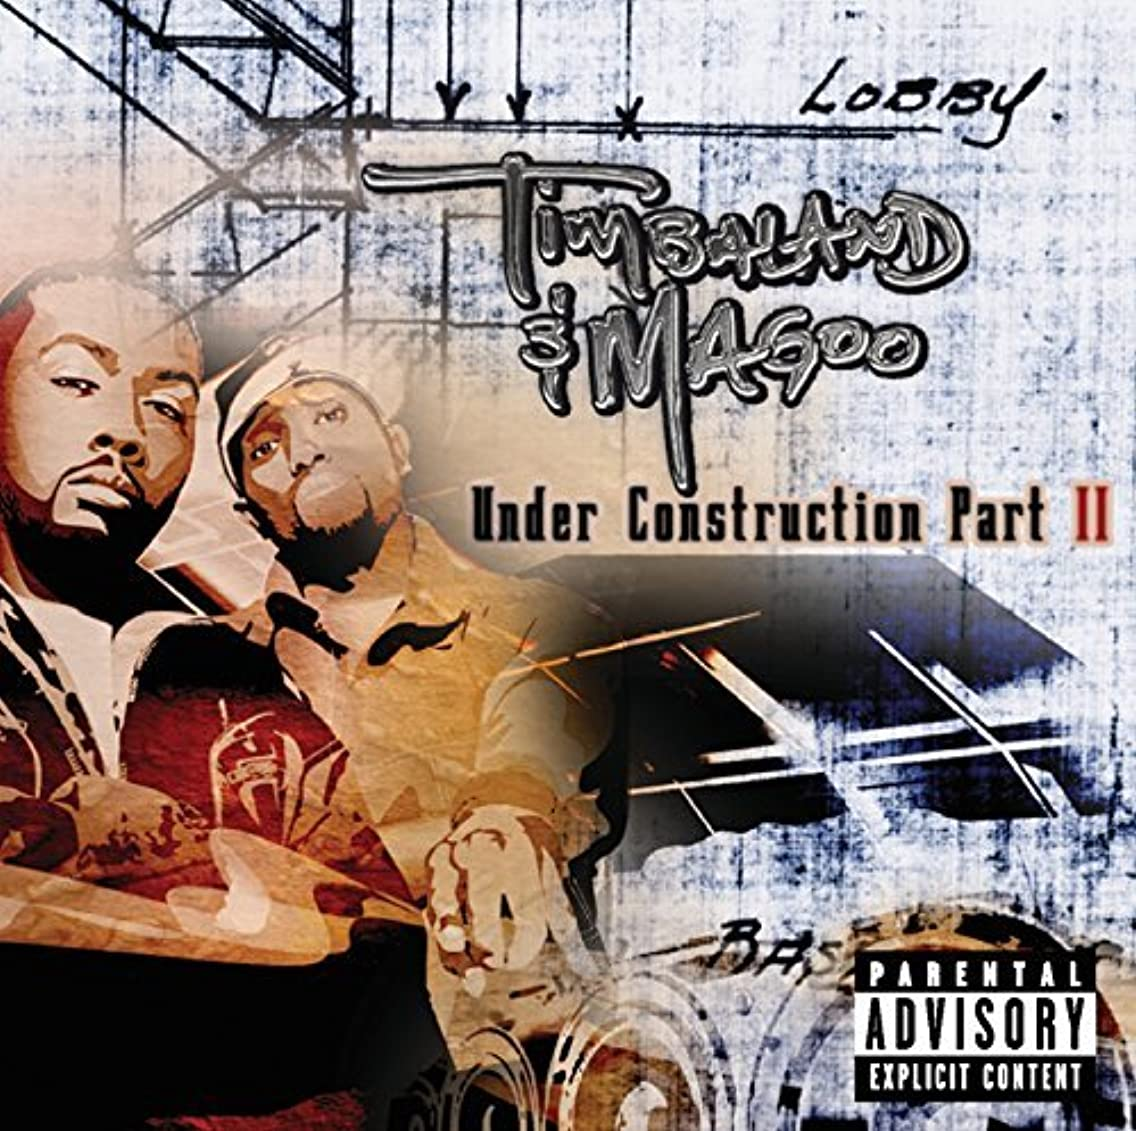 Under Construction Part II by Timbaland & Magoo (2003-11-18)